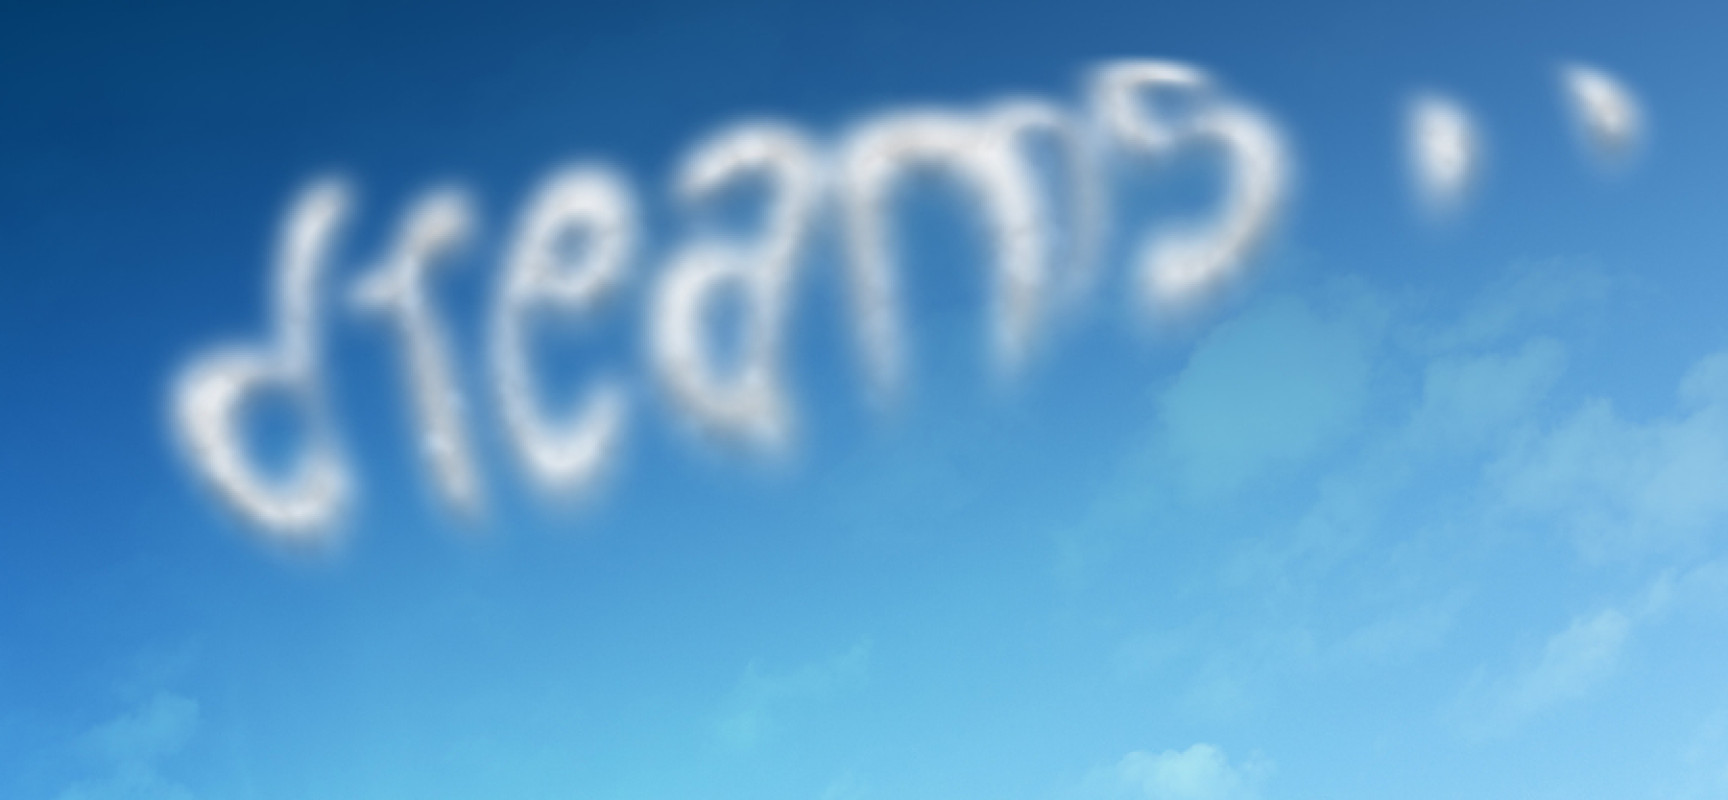 Your Dreams Quotes